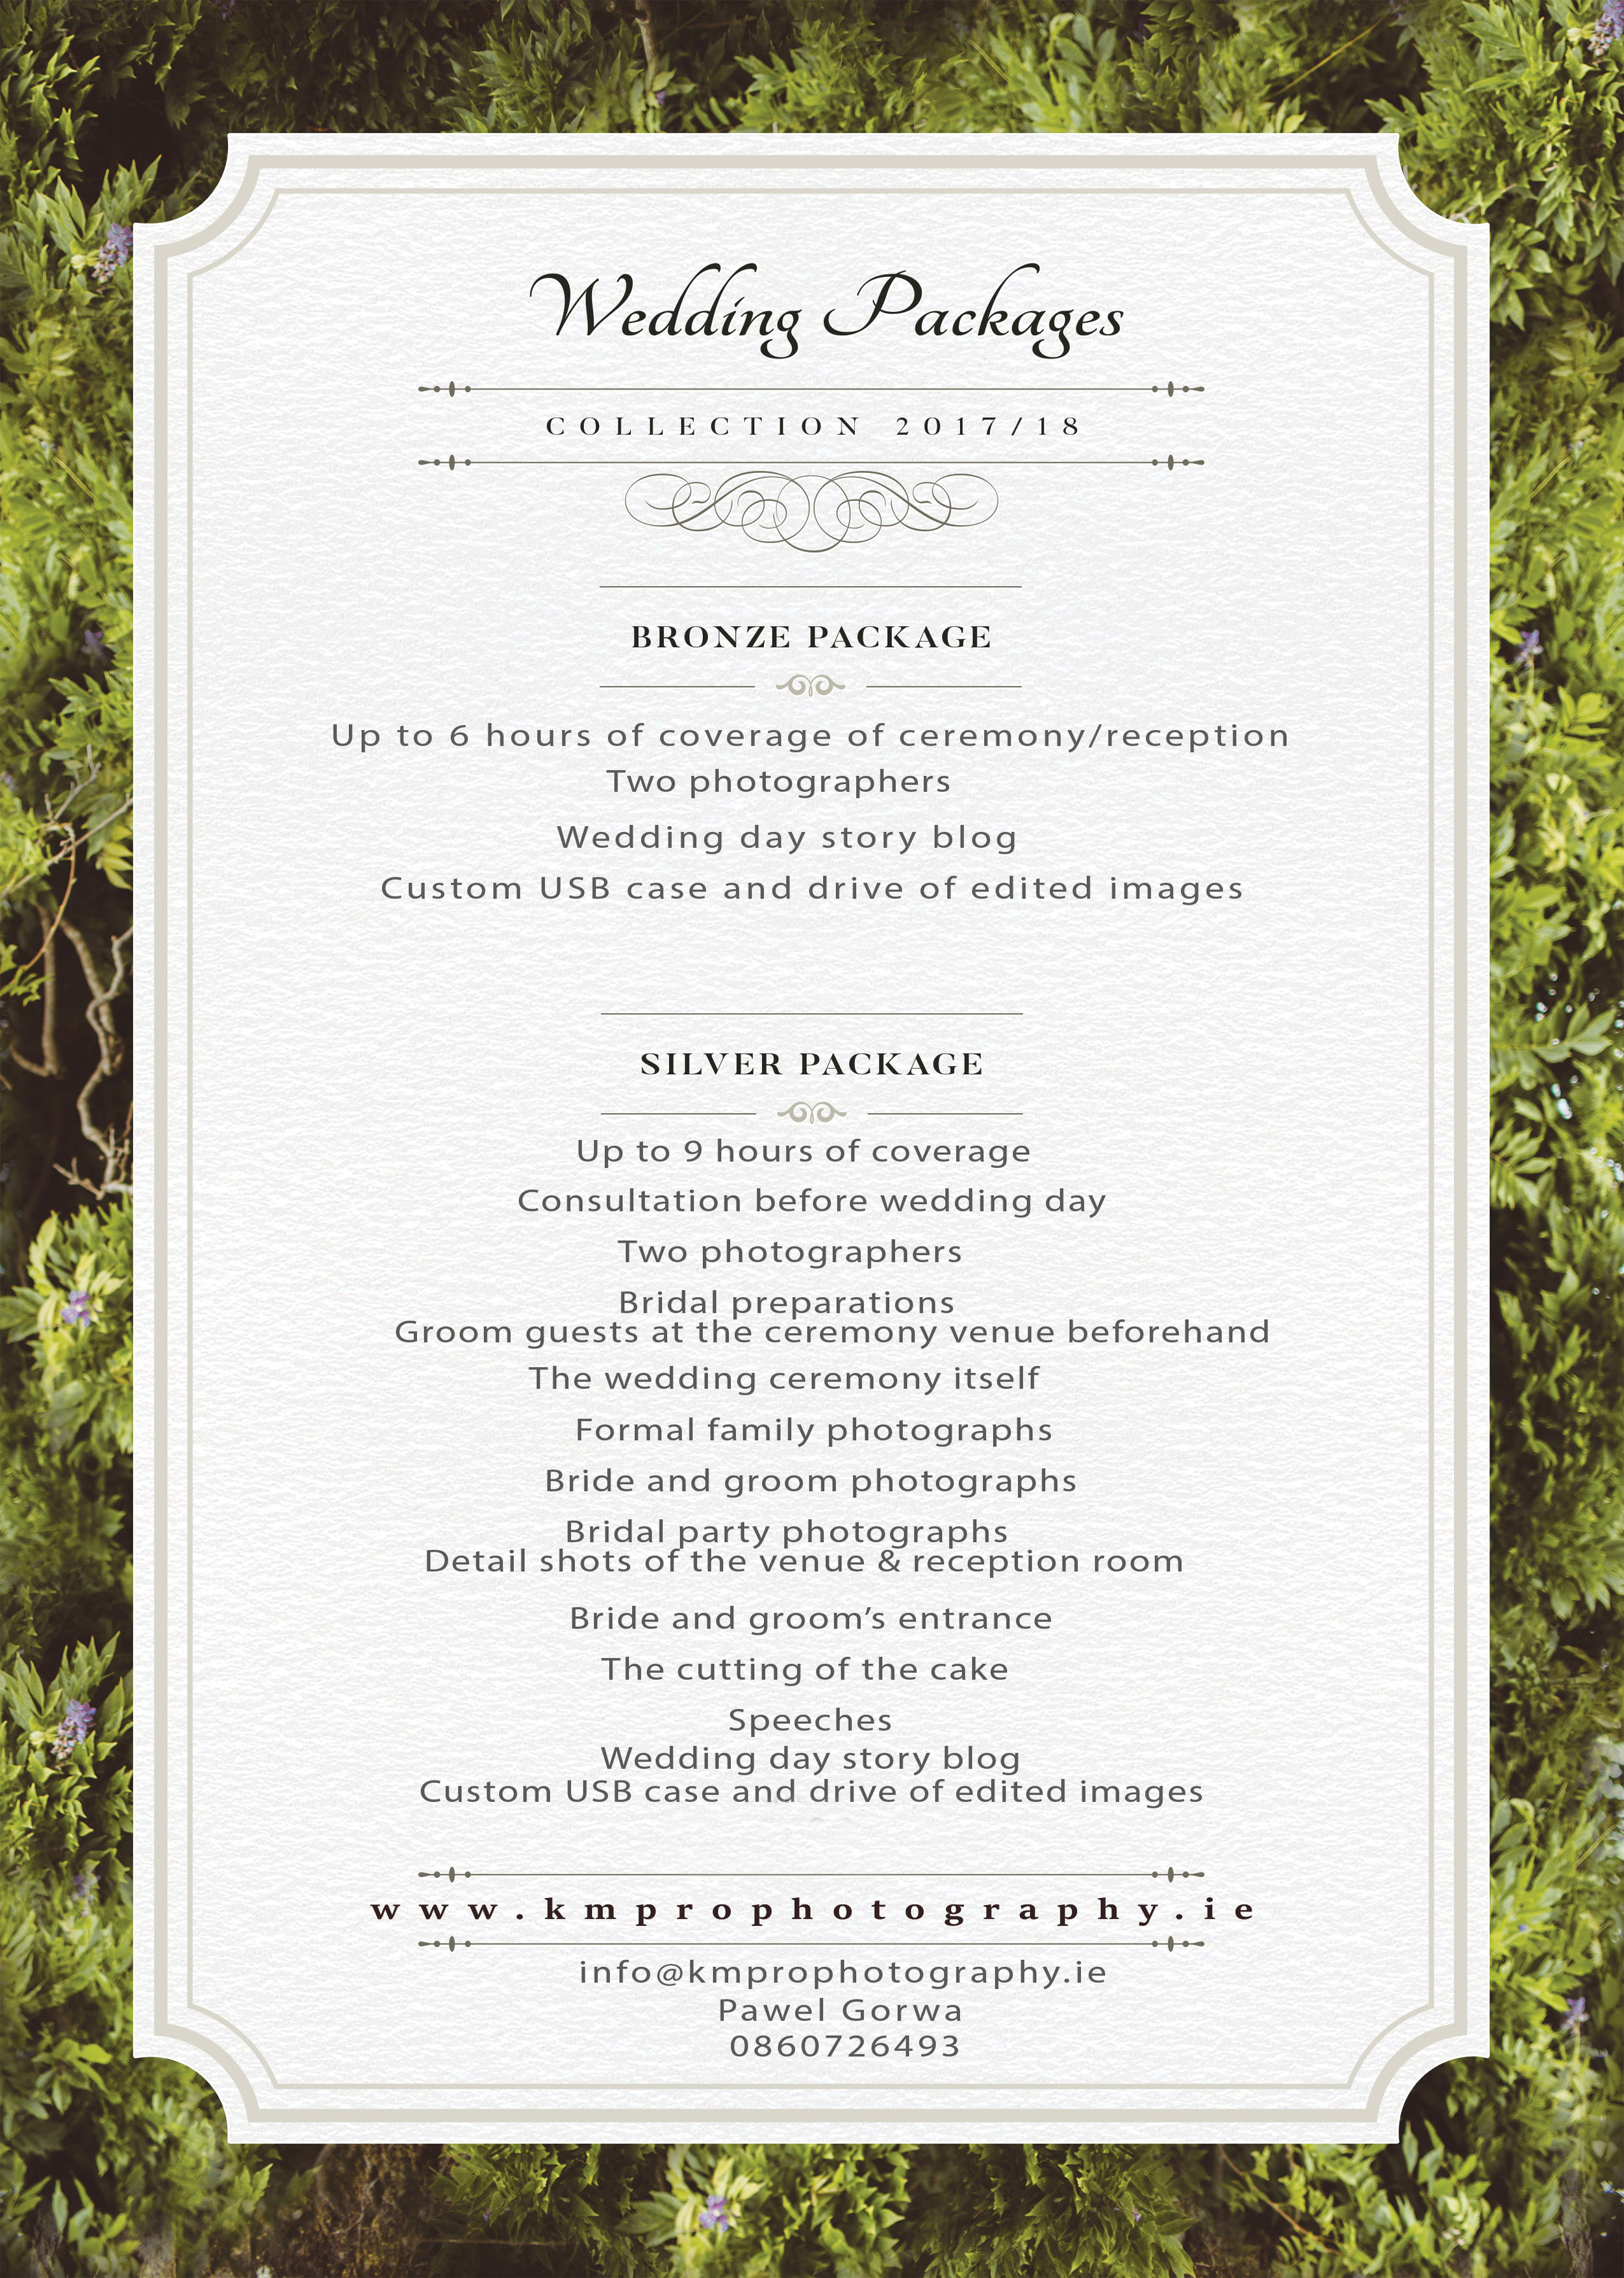 prices-wedding-packages-np1.jpg